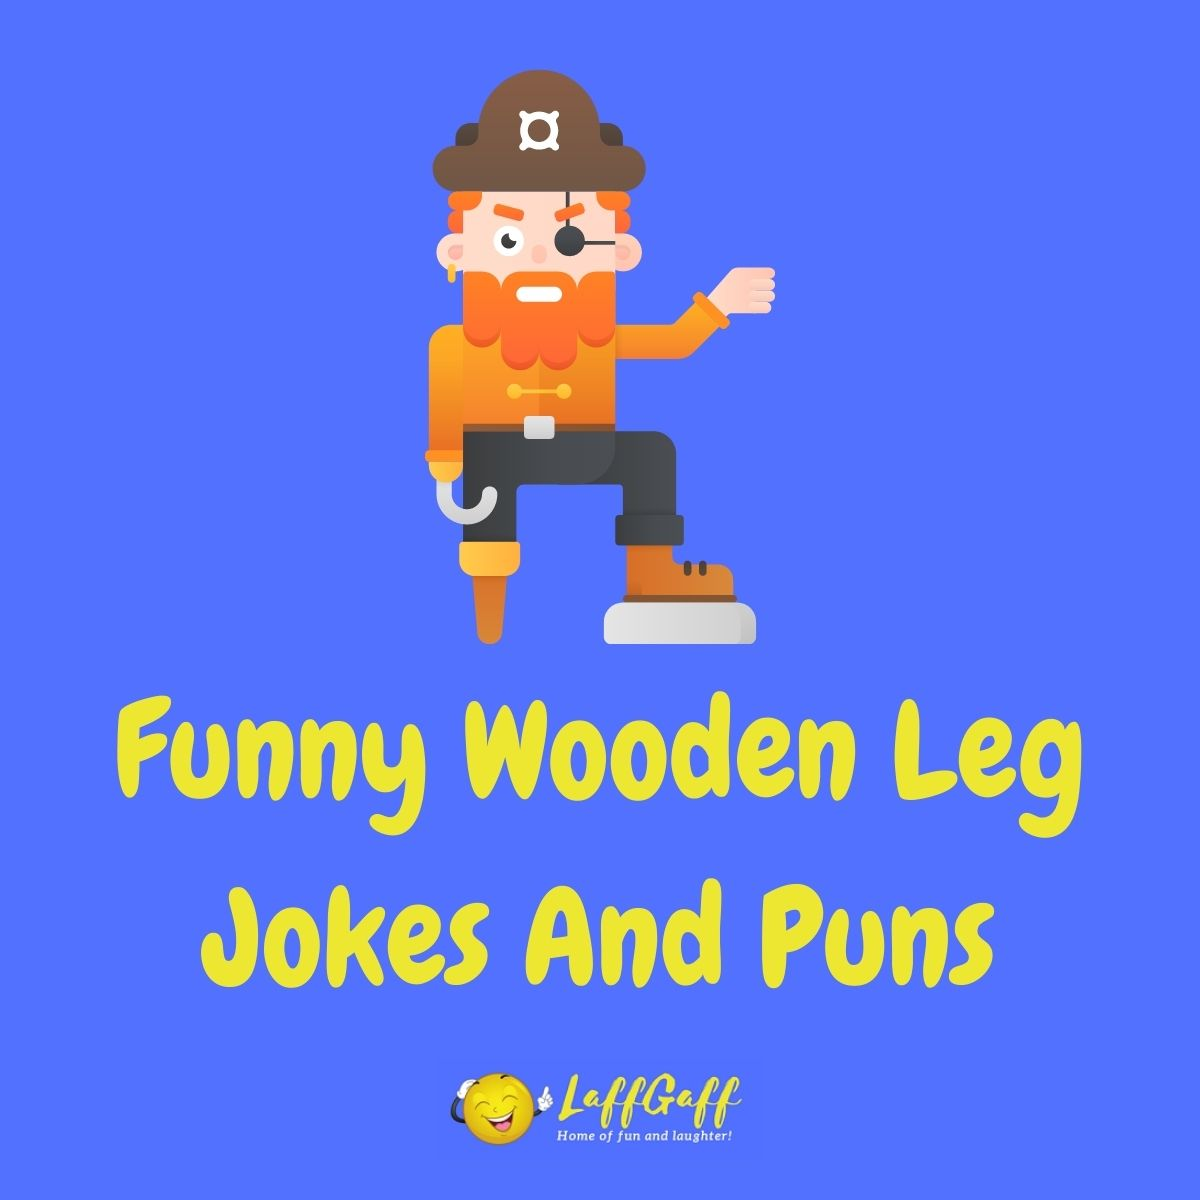 Featured image for a page of funny wooden leg jokes and puns.